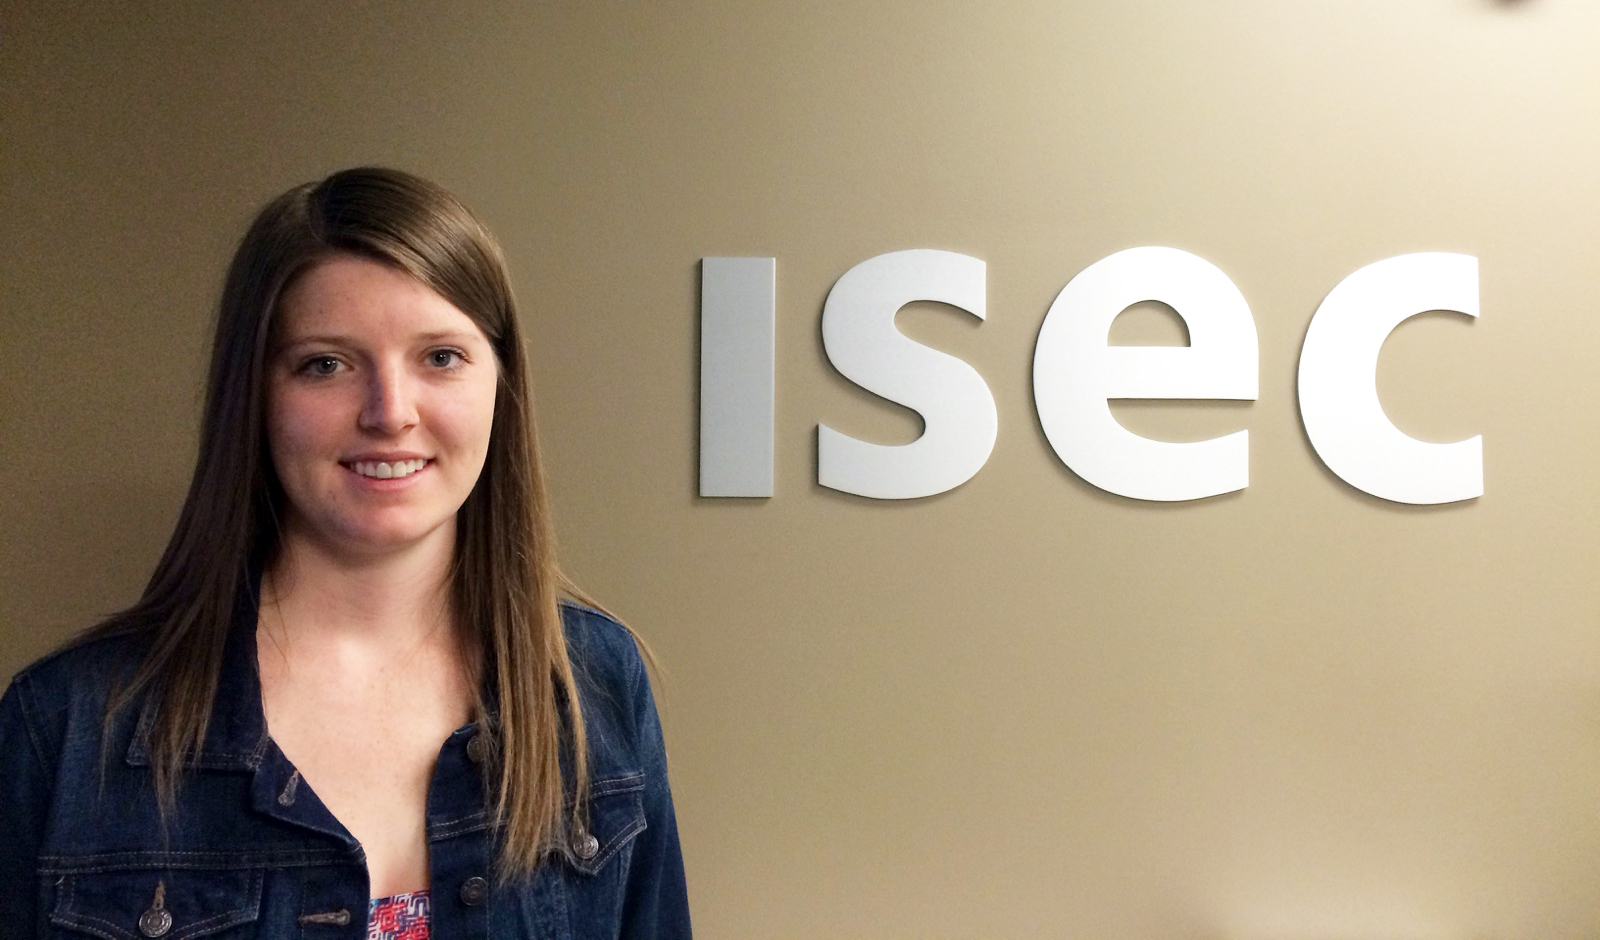 heidi-dowling_isec-intern_workforce-development